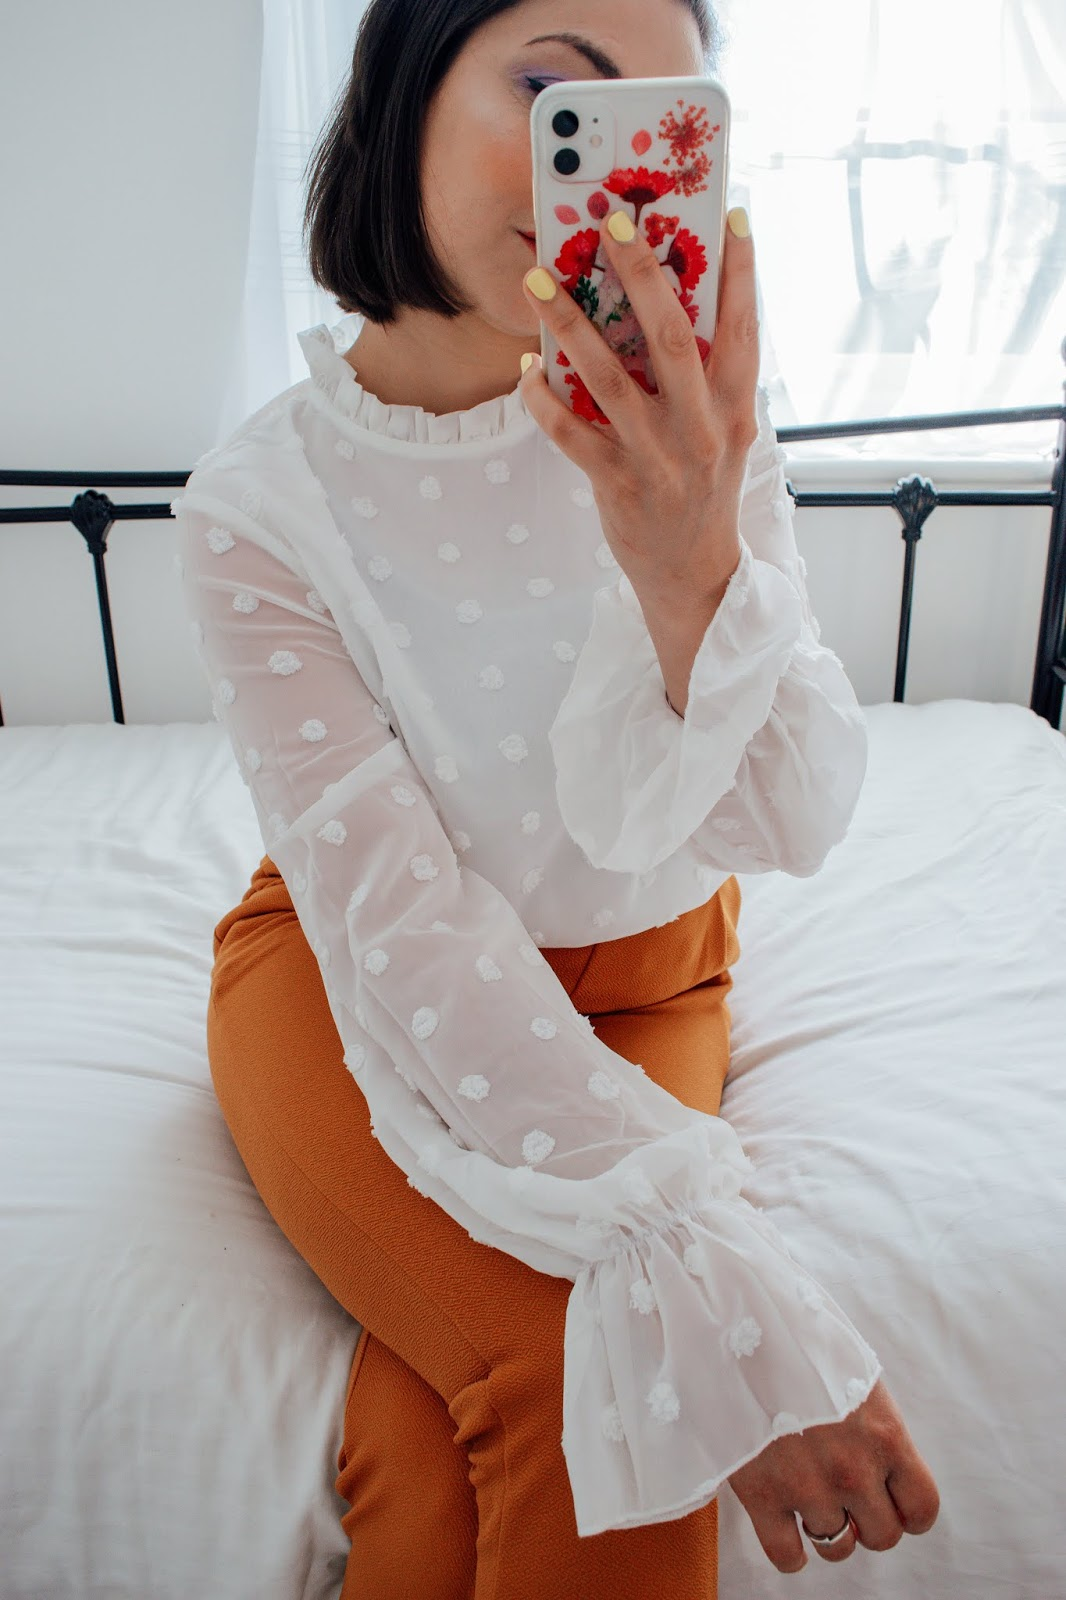 Person holding a phone wearing a white blouse and burnt orange trousers.